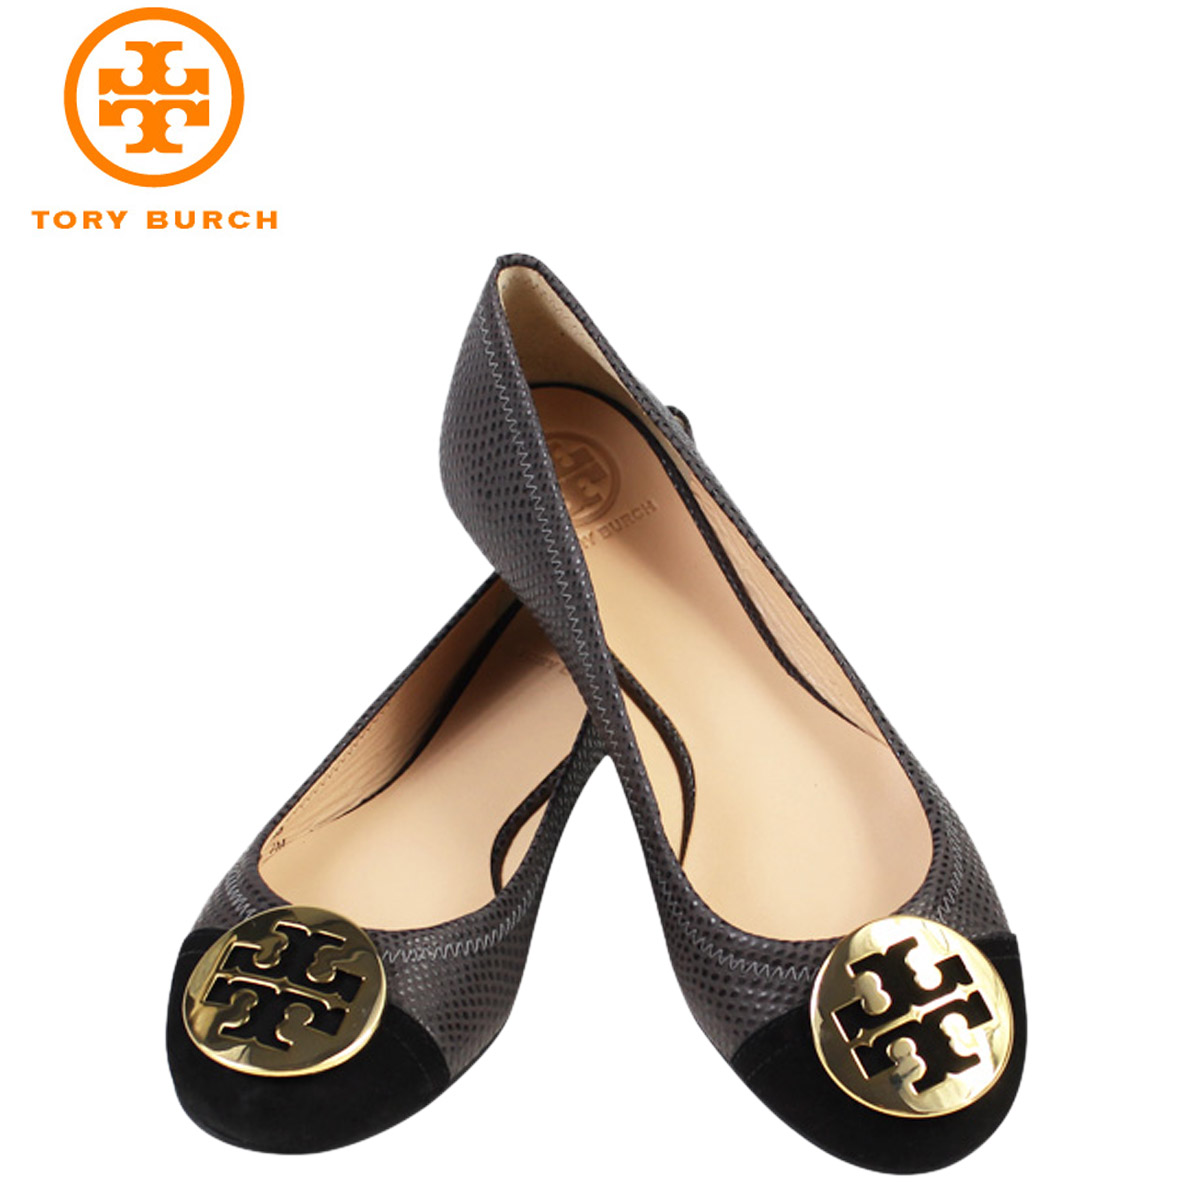 31654d577fae Tory Burch s luxury brands at affordable based on various sensory and  classic American sportswear. Originally developed by price can be worn by  women of all ...